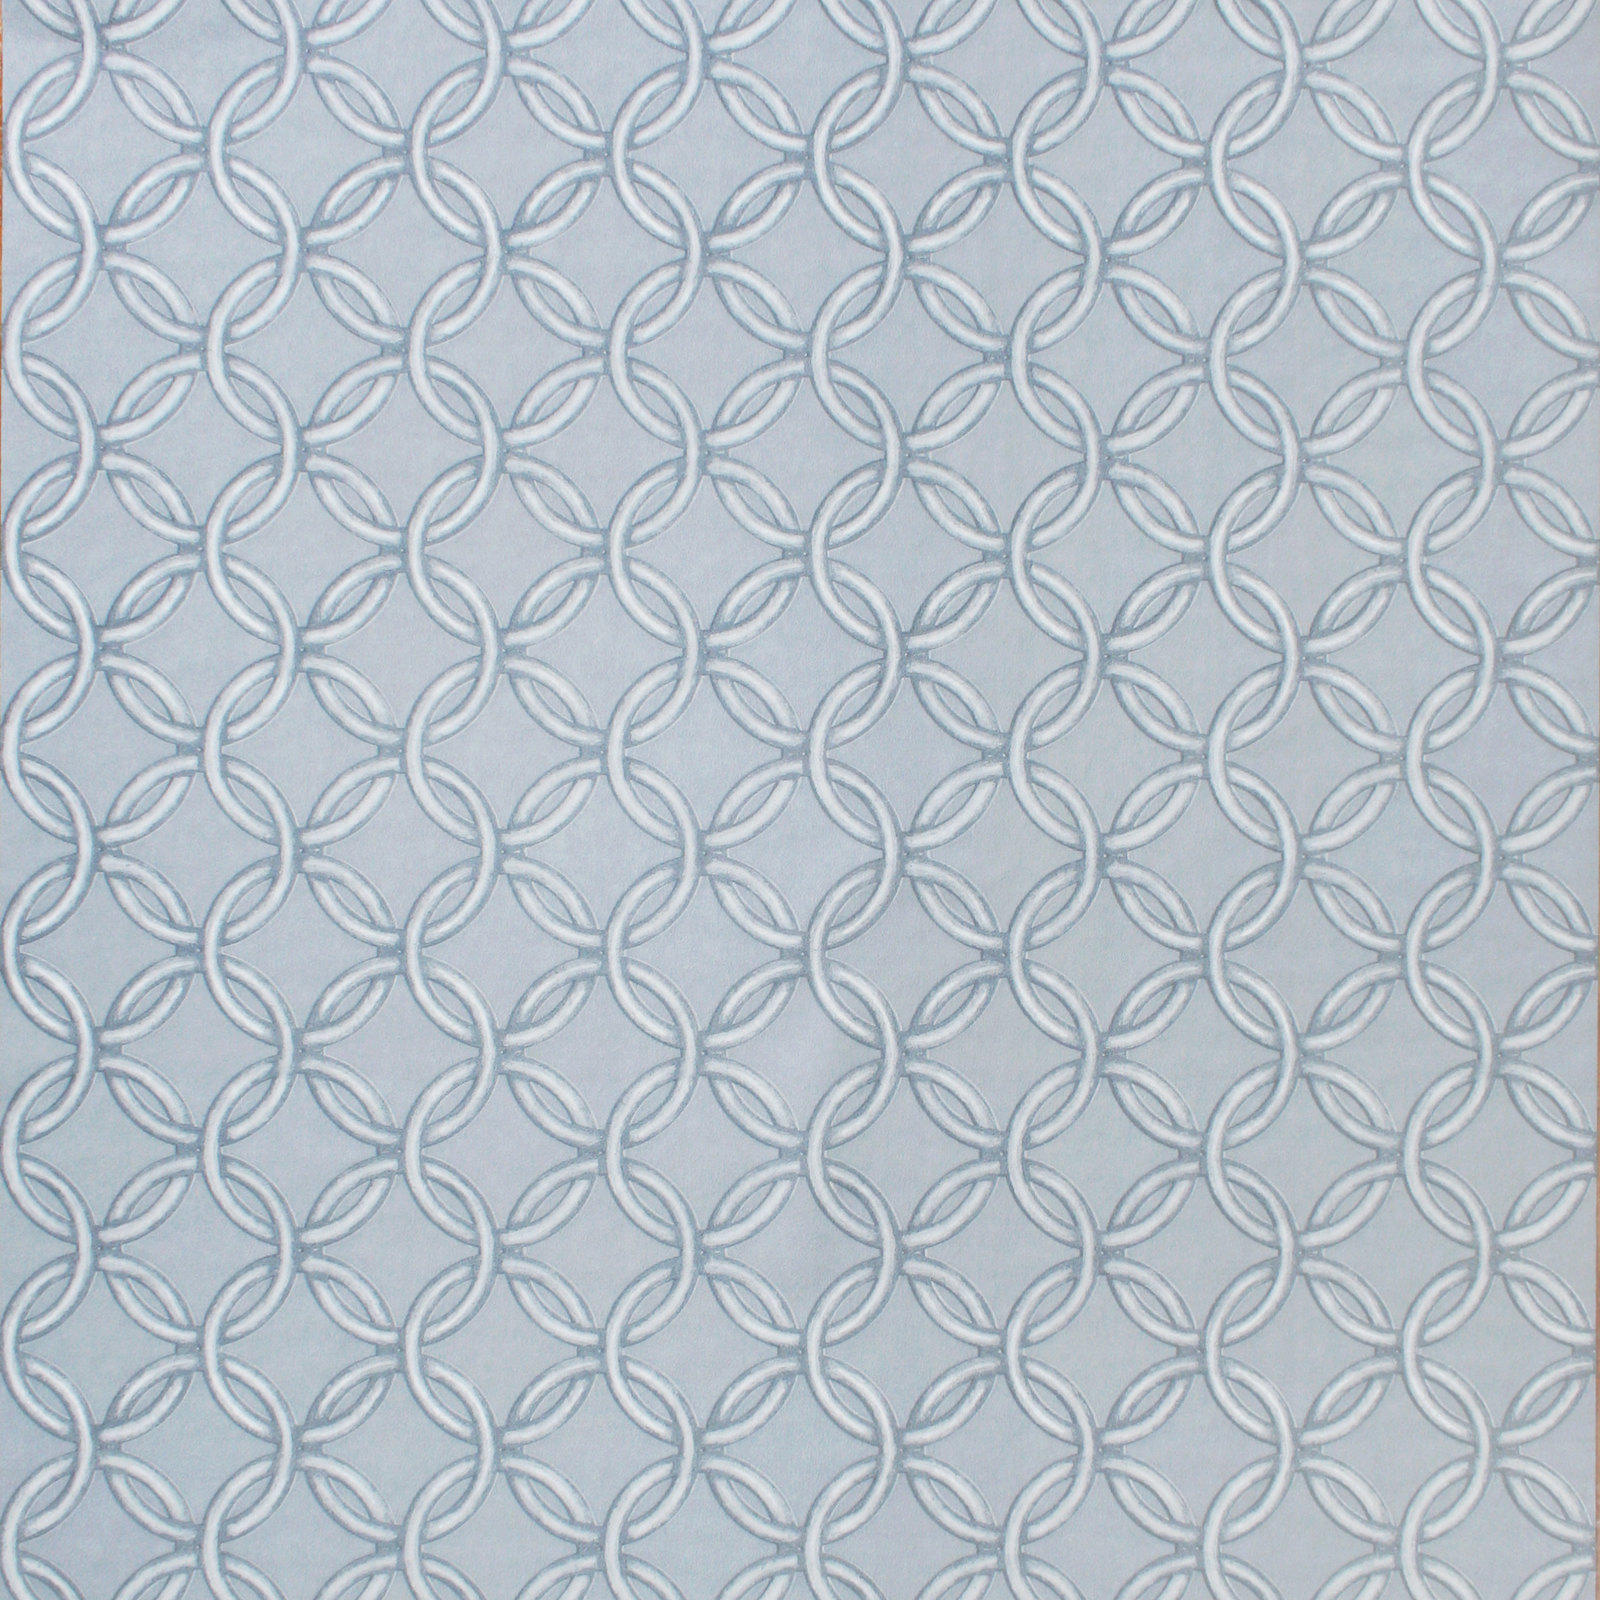 Tapetti Inspired Circle 1220575 0,53x10,05 m harmaa non-woven